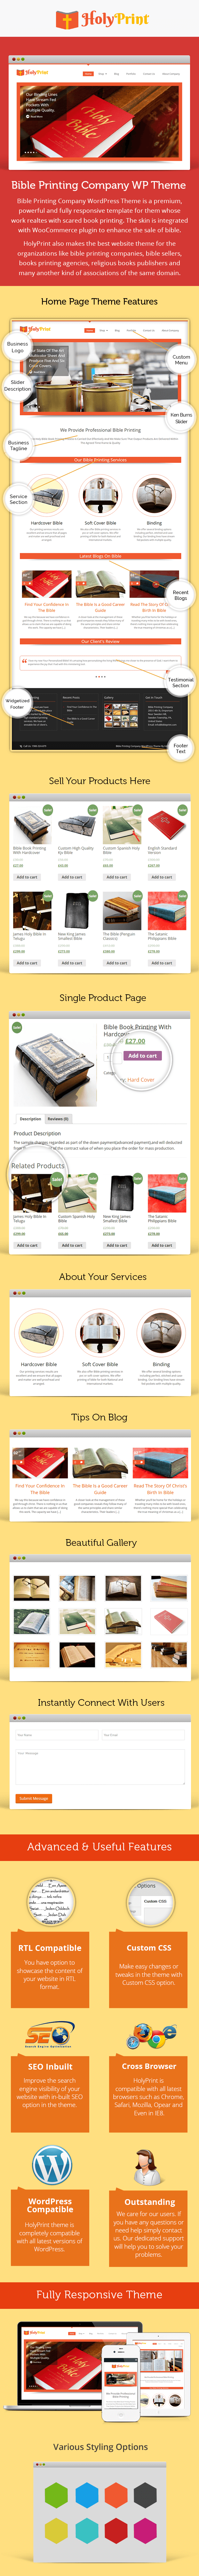 Bible Printing Company WordPress Theme Sales Page